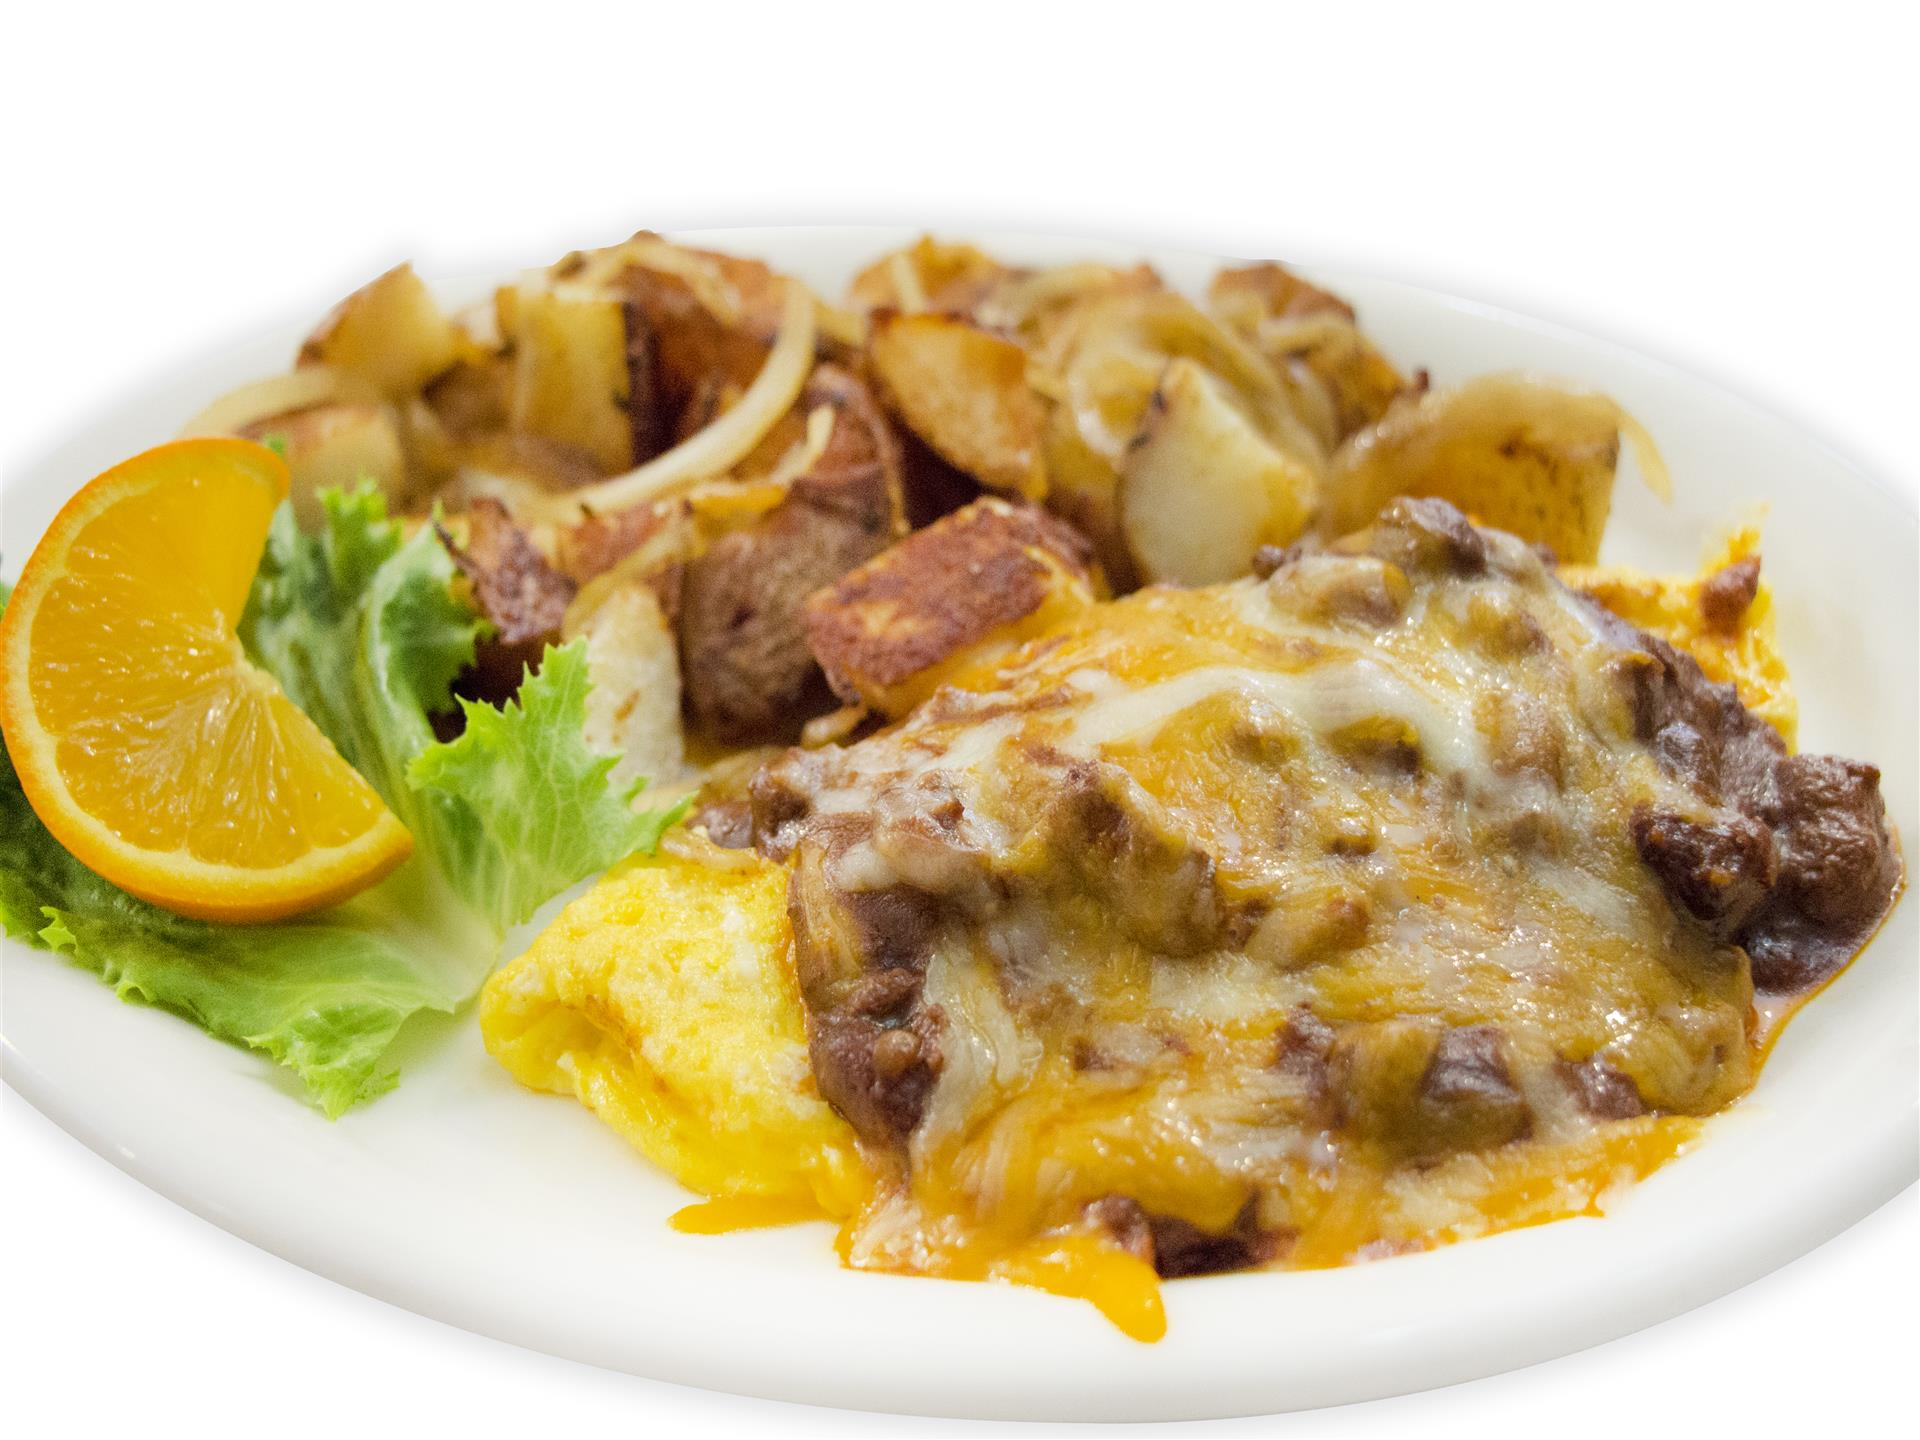 Chili Cheese Omelette